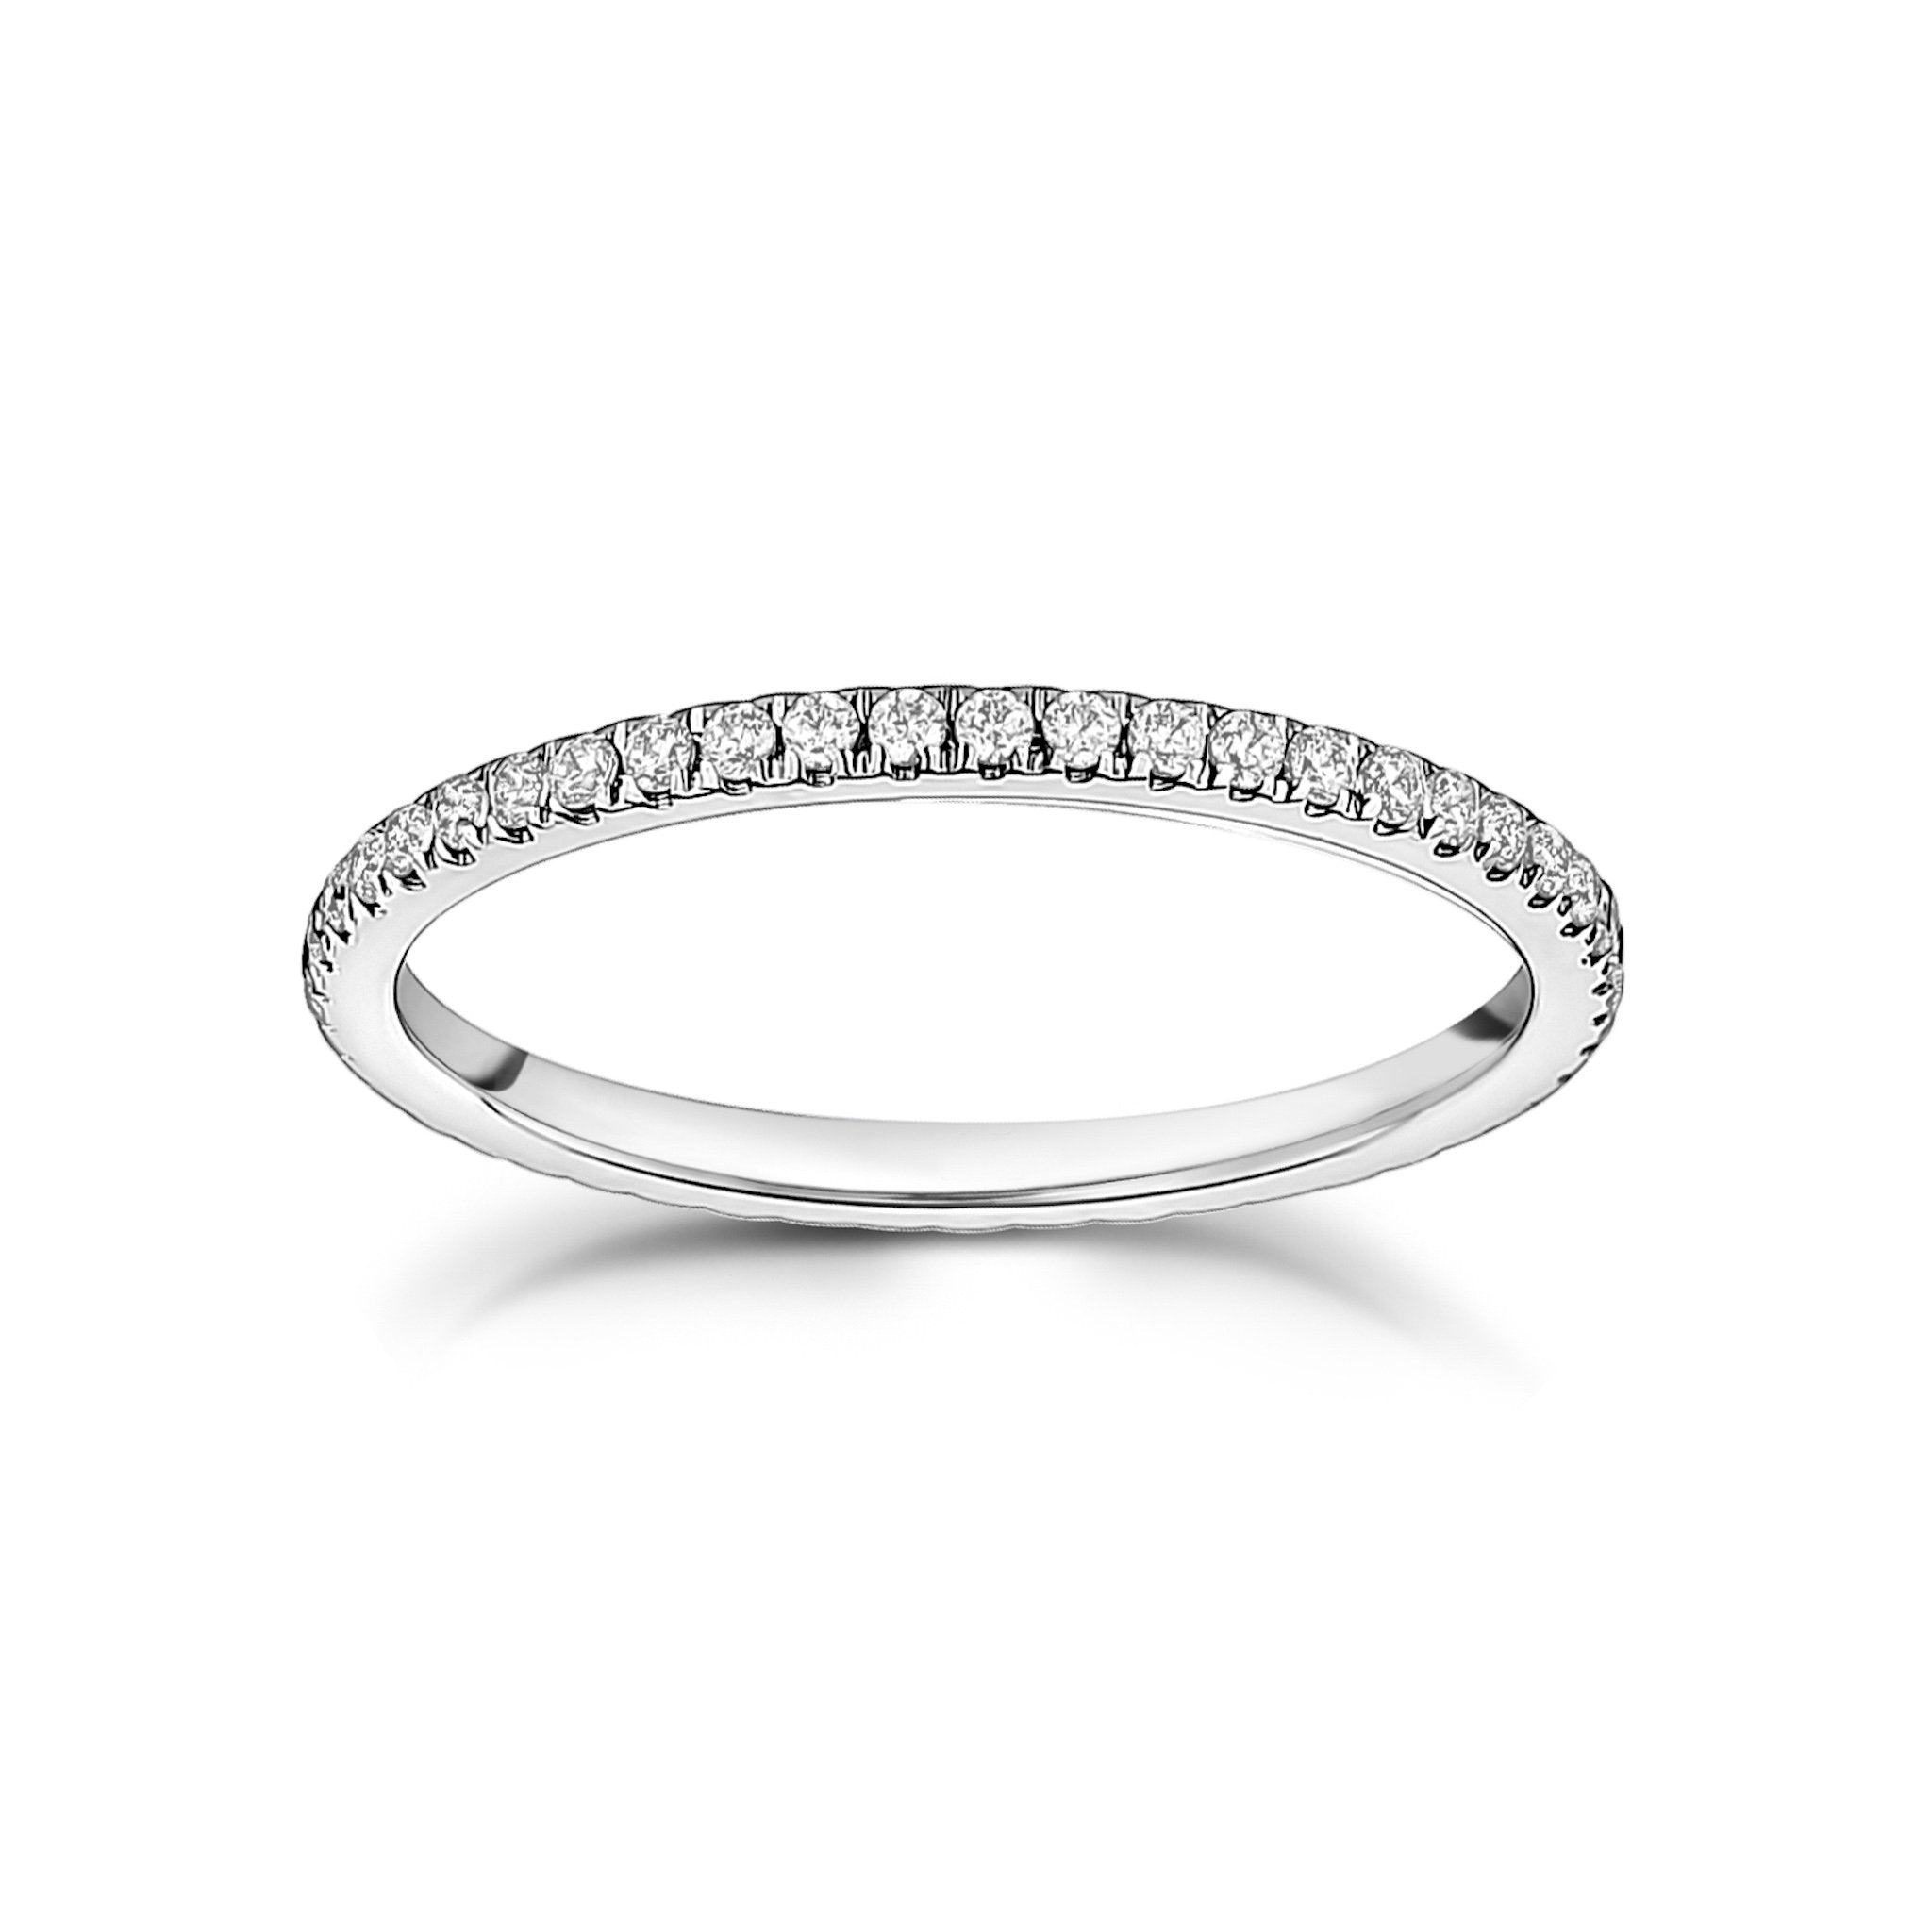 Women Ring - 1.5mm Thin Cubic Zircon Stainless Steel Eternity Band